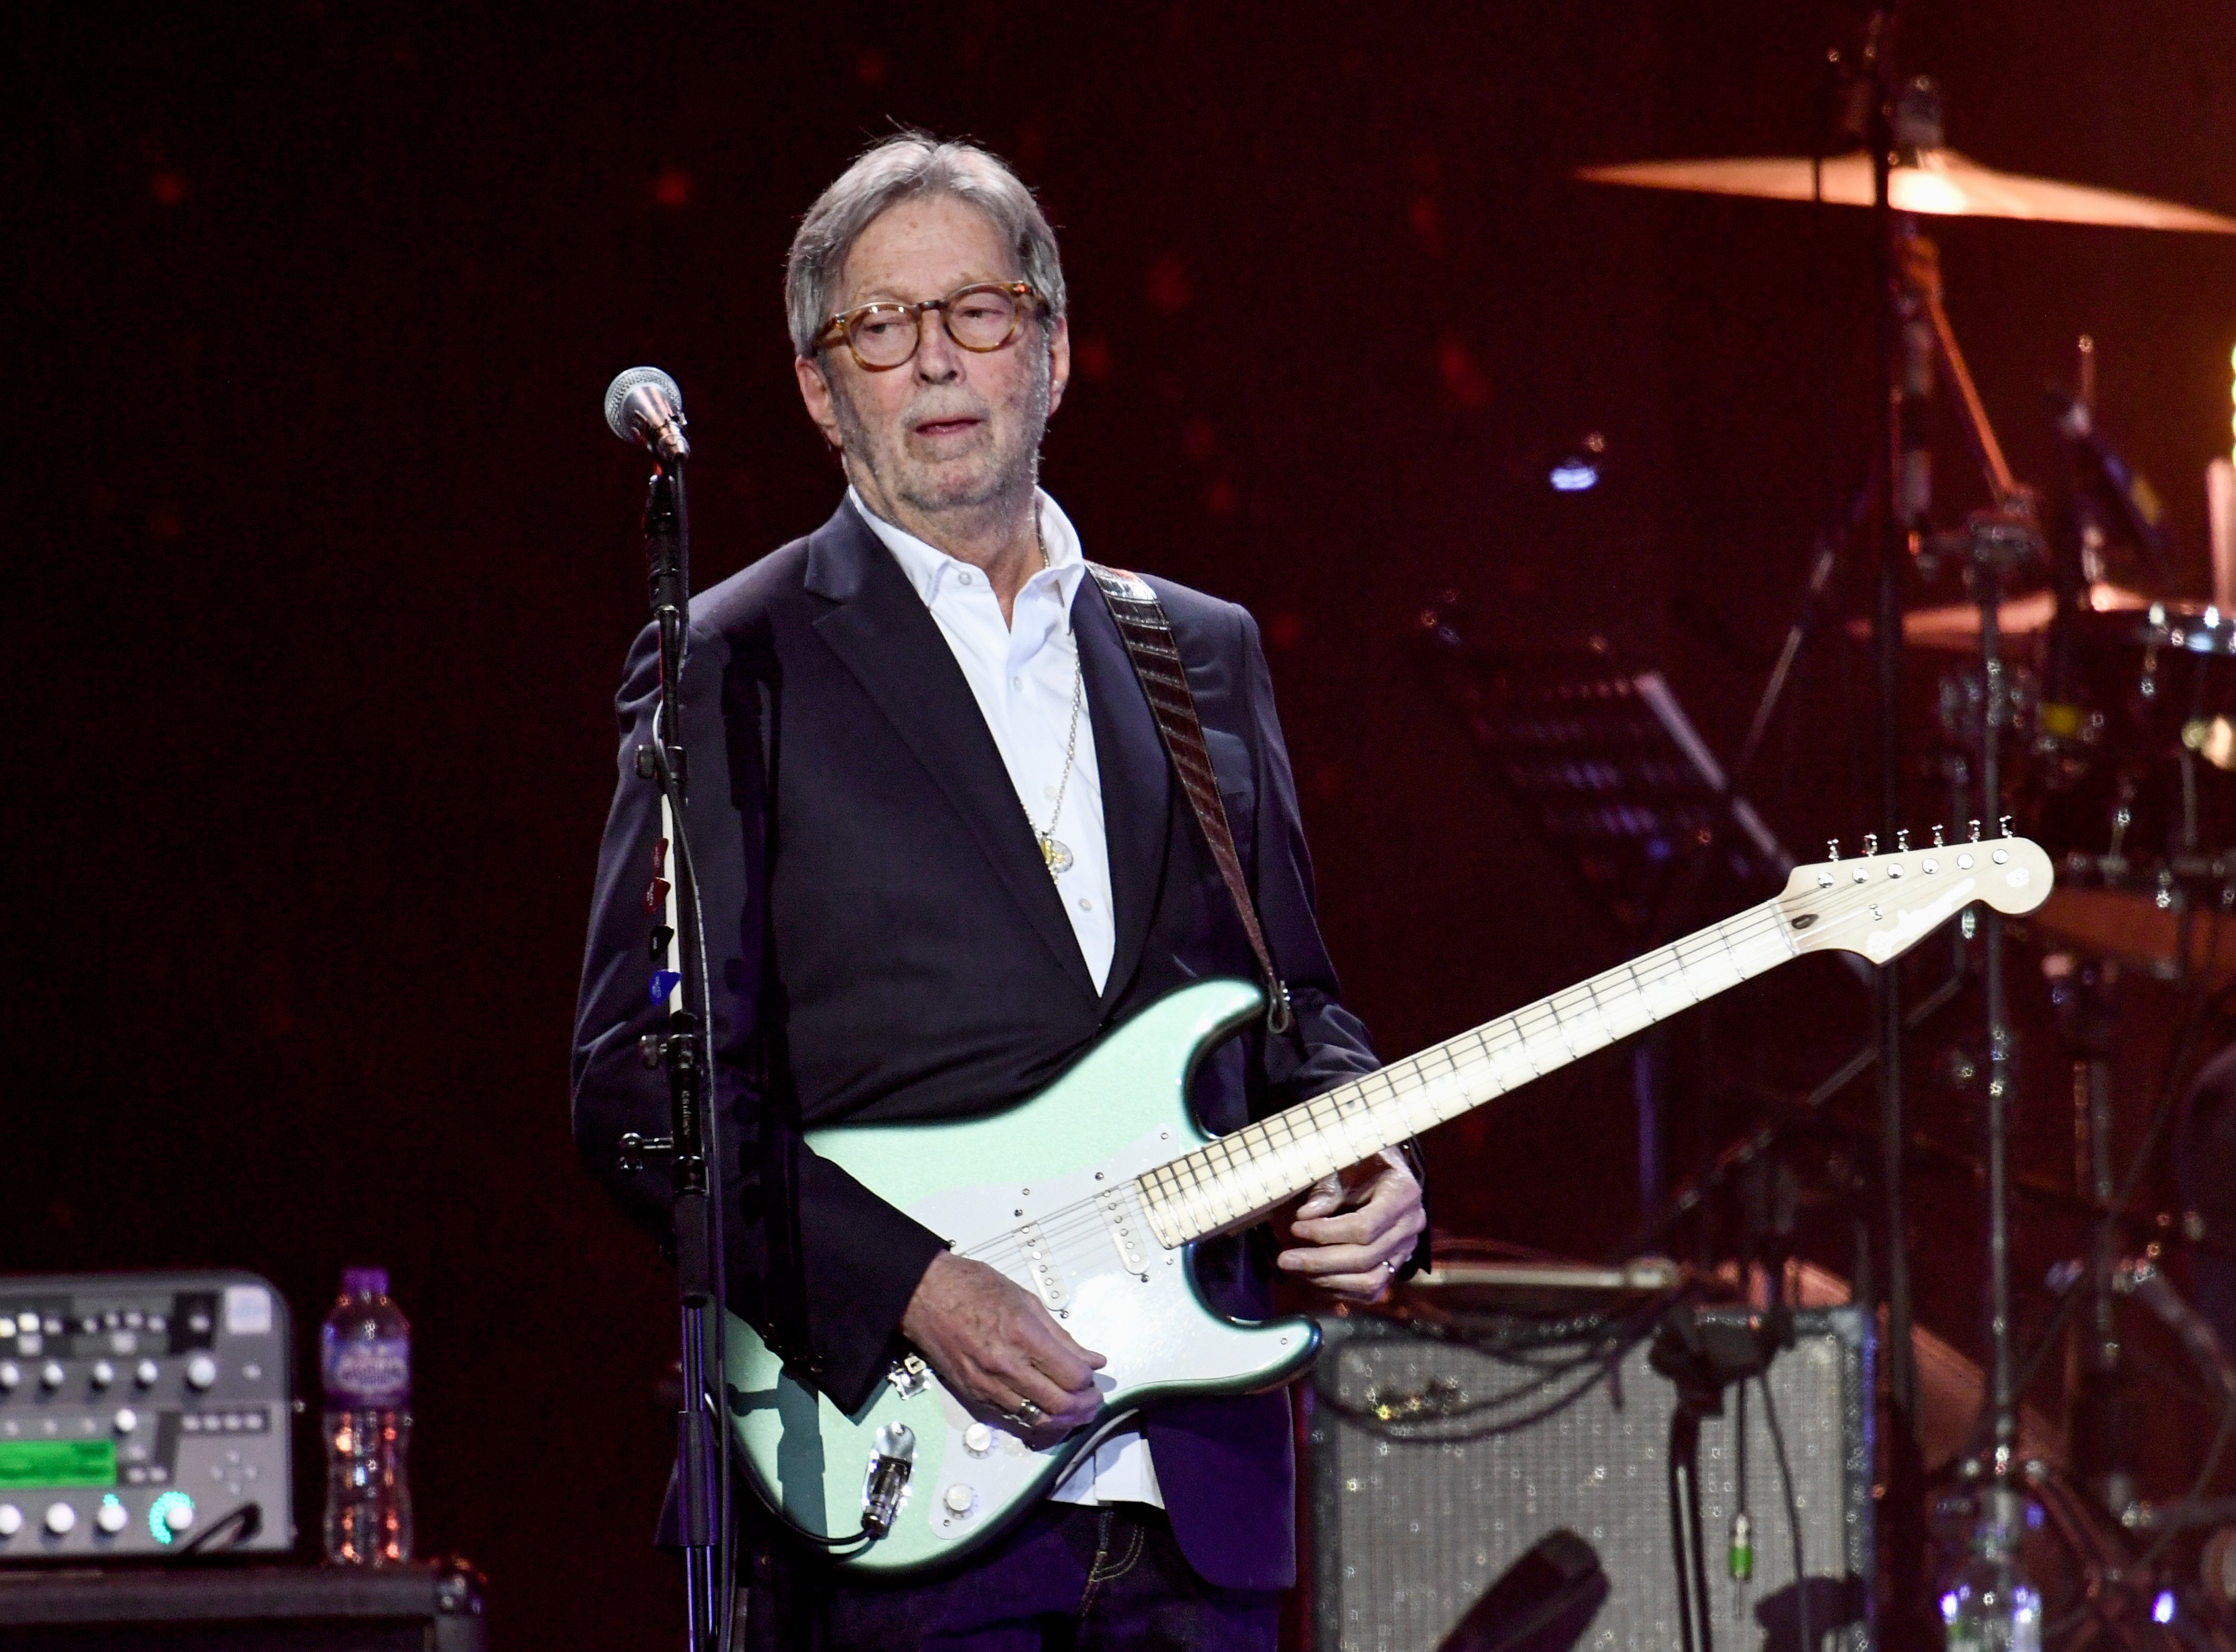 Eric Clapton performs on stage during Music For The Marsden 2020 at The O2 Arena on March 03, 2020 in London, England. (Photo by Gareth Cattermole/Gareth Cattermole/Getty Images)